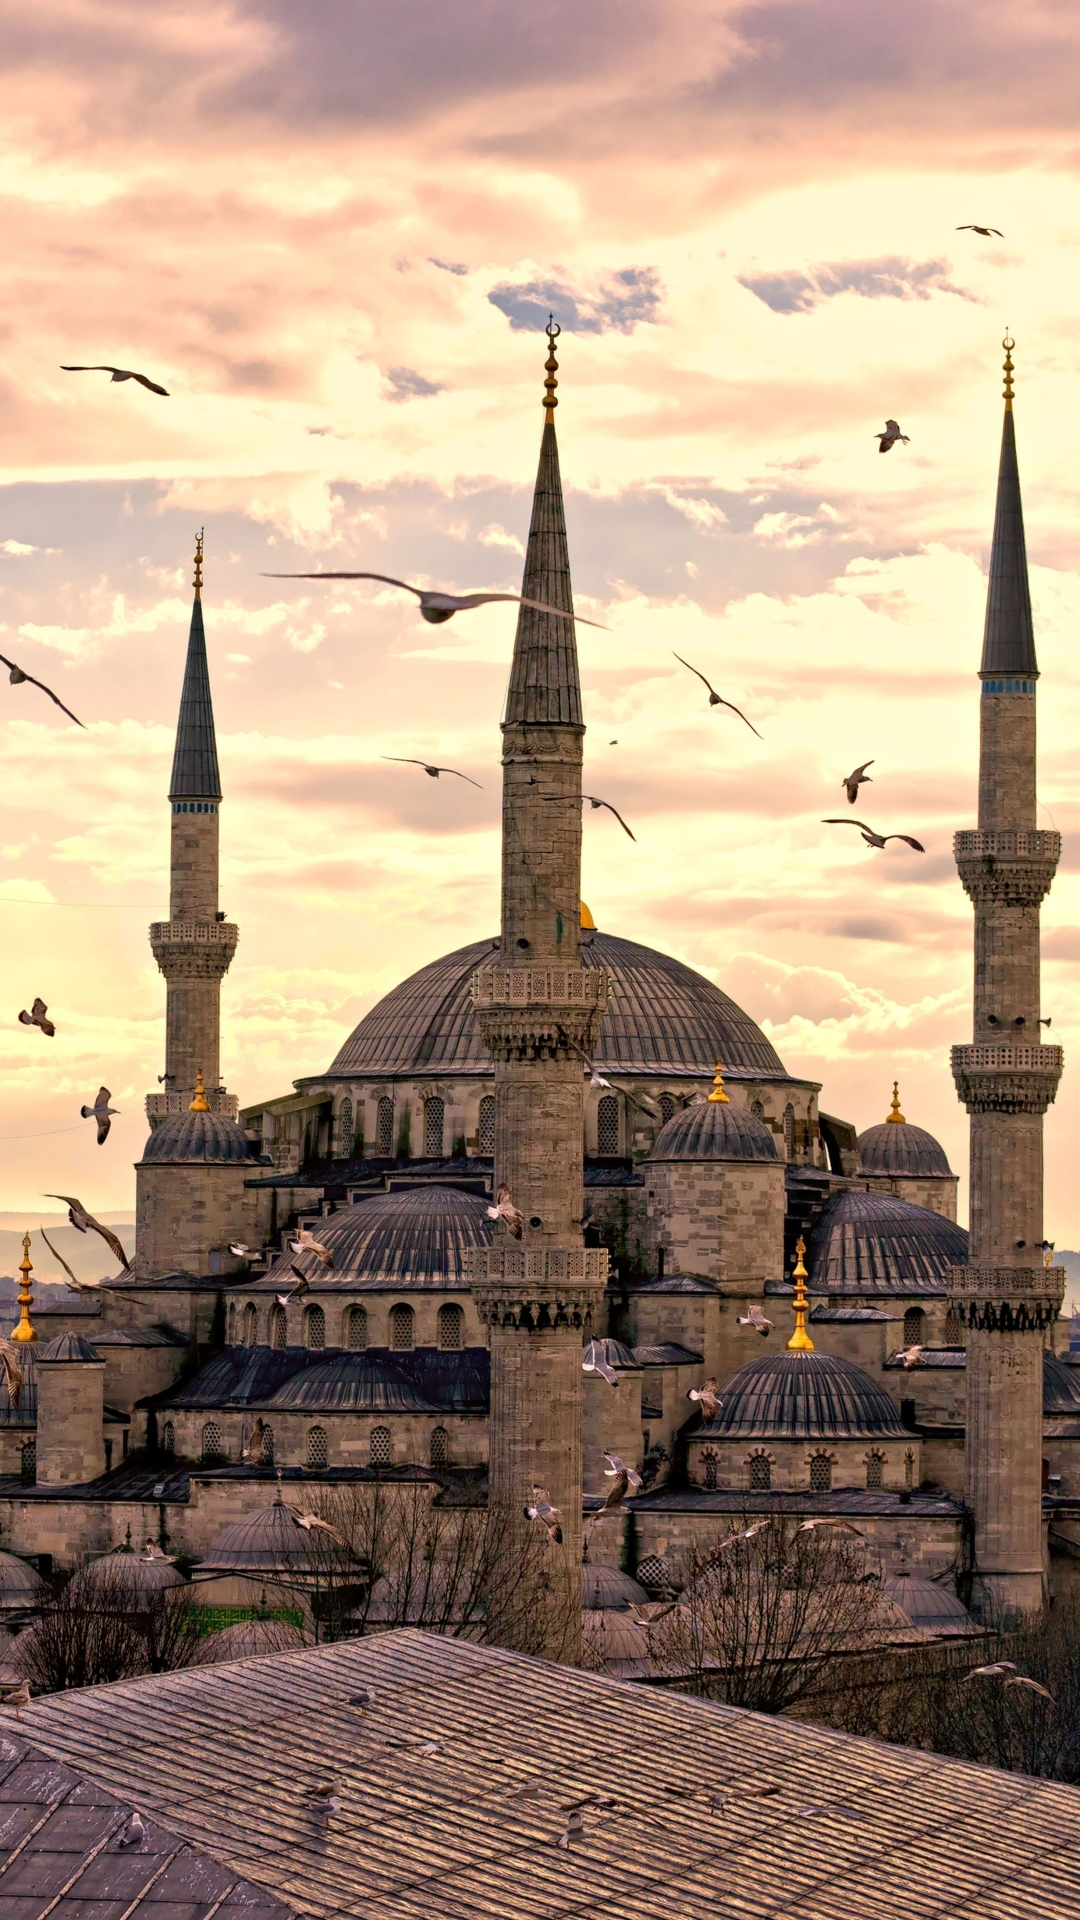 iphone 7 plus religious sultan ahmed mosque wallpaper id 644452